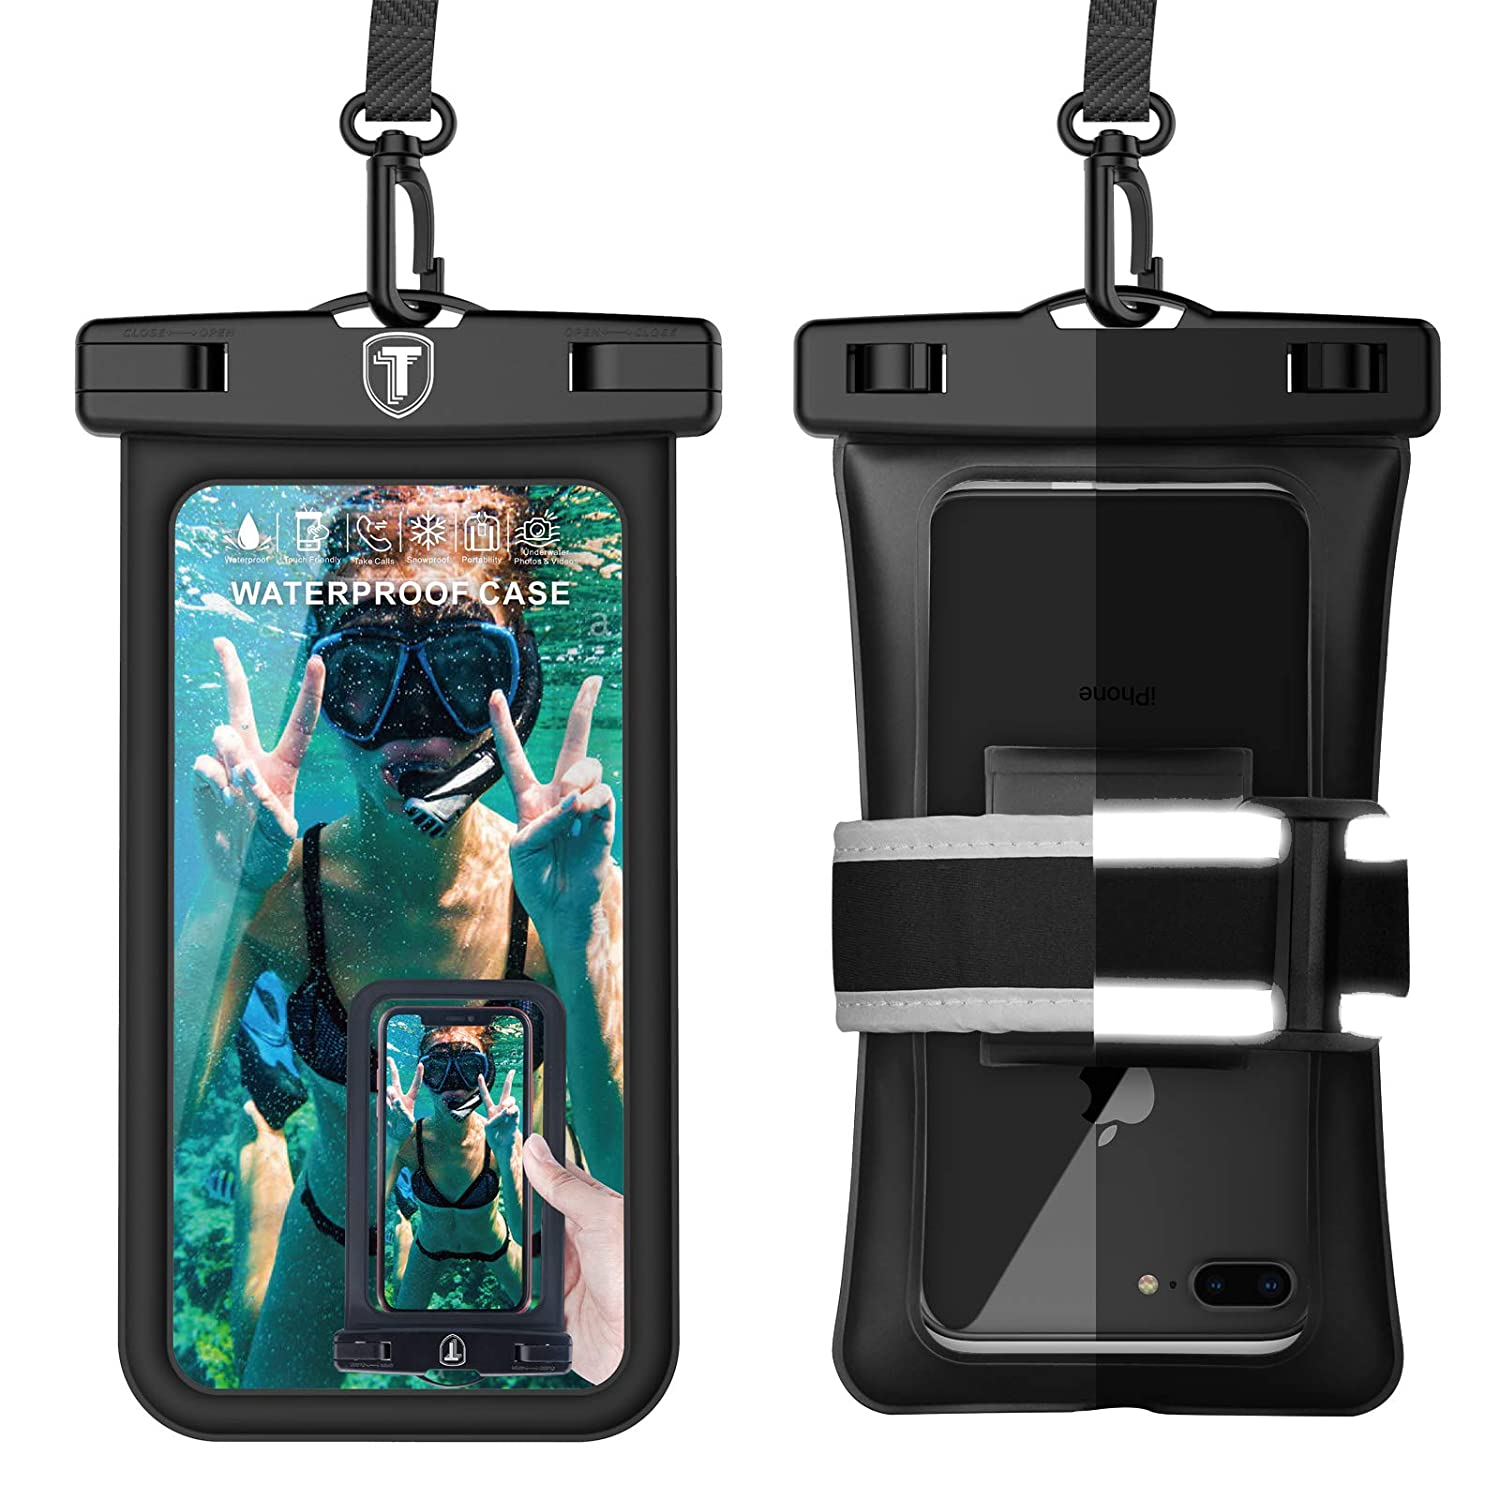 Tekcoo Universal Waterproof Case, [Floating] IPX8 Waterproof Phone Pouch Dry Bag for iPhone 11 Pro/Xs Max/Xs/XR/X, Galaxy S10/S10+/S10e/S9/Note 9/Note10, LG G8, Moto G7,Pixel 3A & Reflective Armband